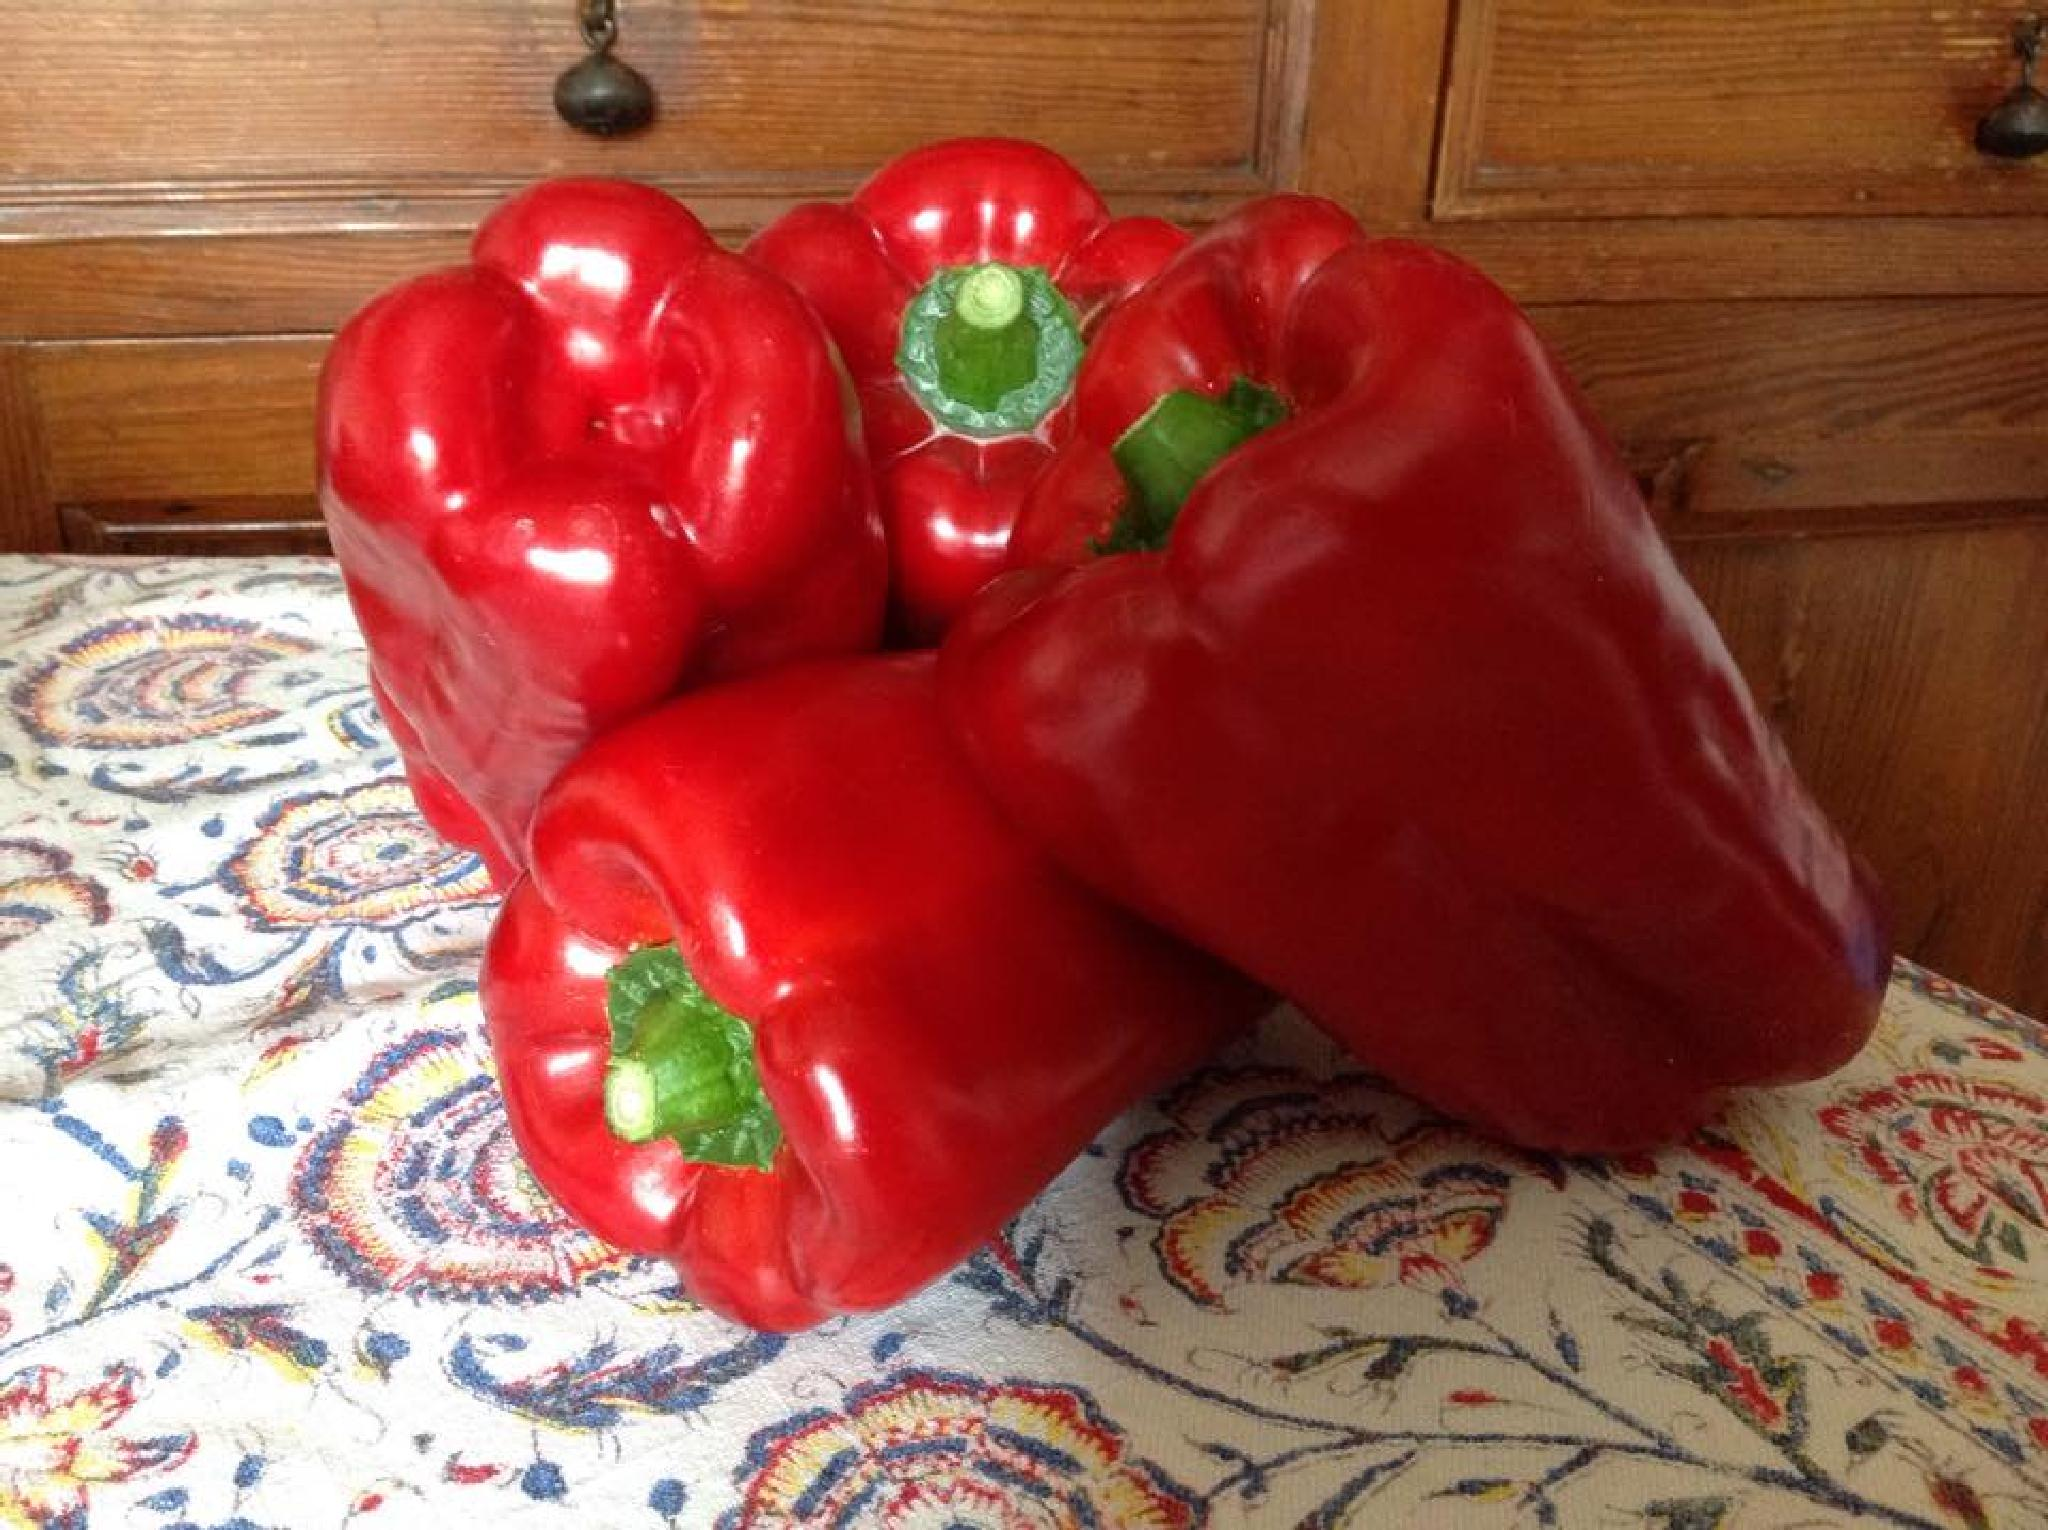 Capsicums by grossiroma